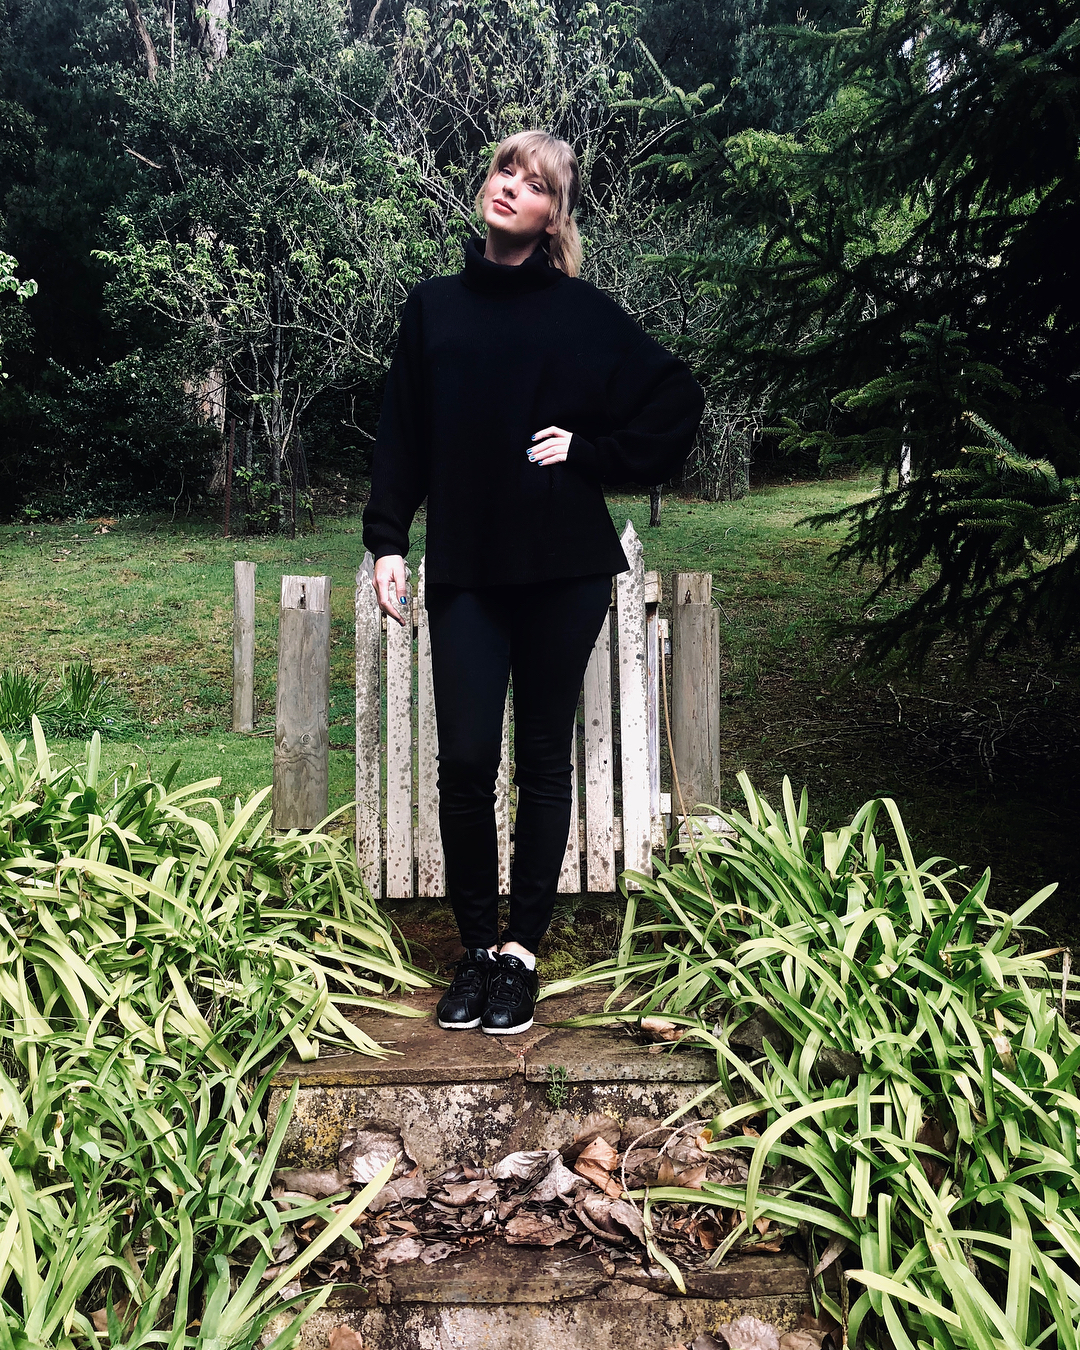 Taylor Swift With Low Bun And Straight Bangs In Black Turtleneck 2019